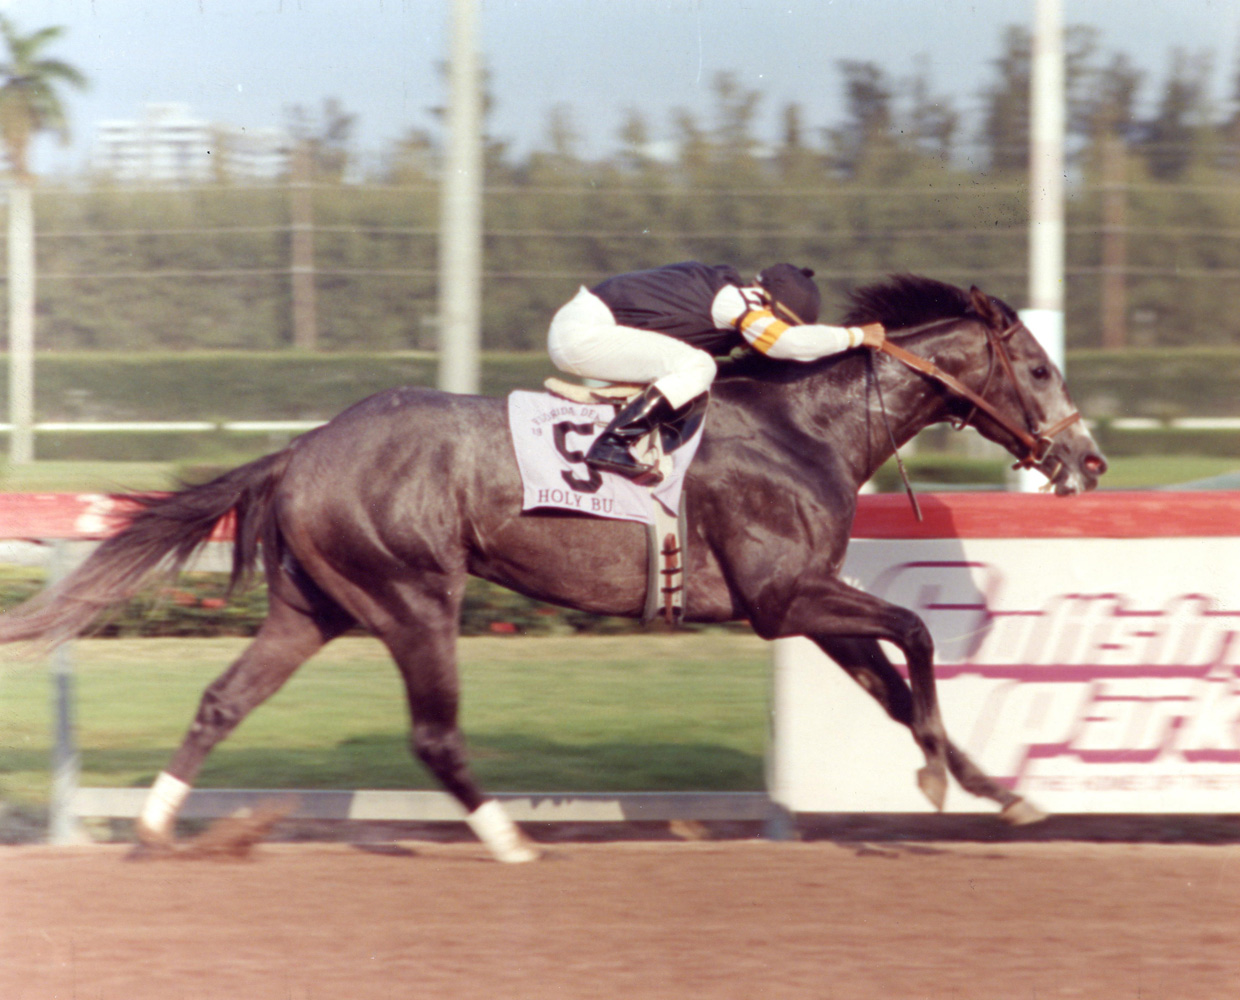 Holy Bull (Mike Smith up) winning the 1994 Florida Derby at Gulfstream Park (Turfotos/Museum Collection)